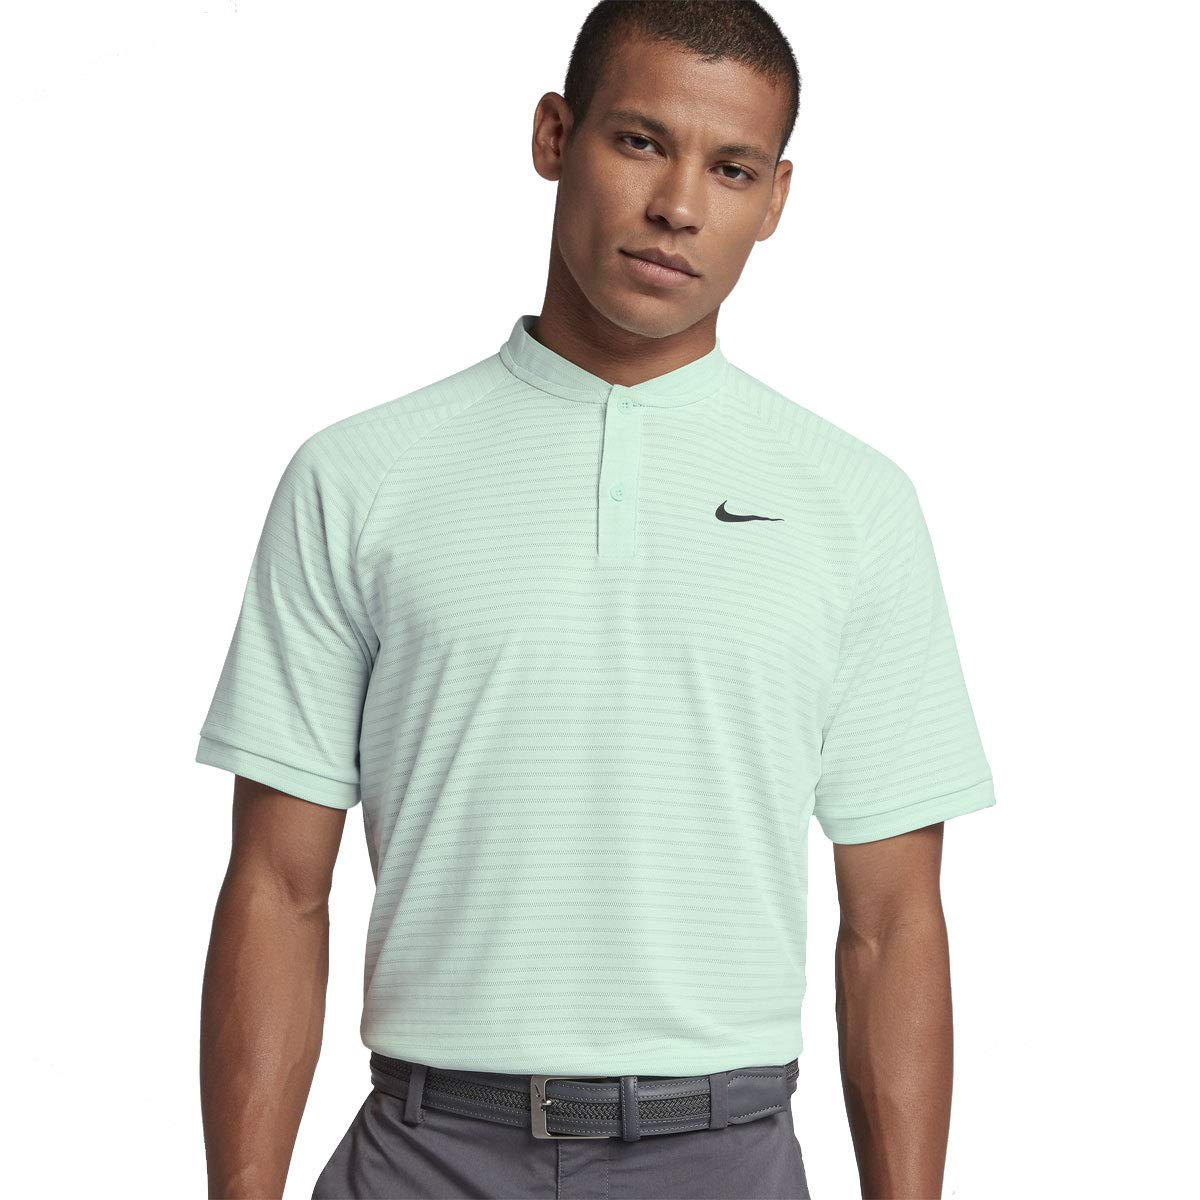 7106ec2e Amazon.com: Nike Golf TW Tiger Woods Zonal Cooling Polo 932175: Clothing